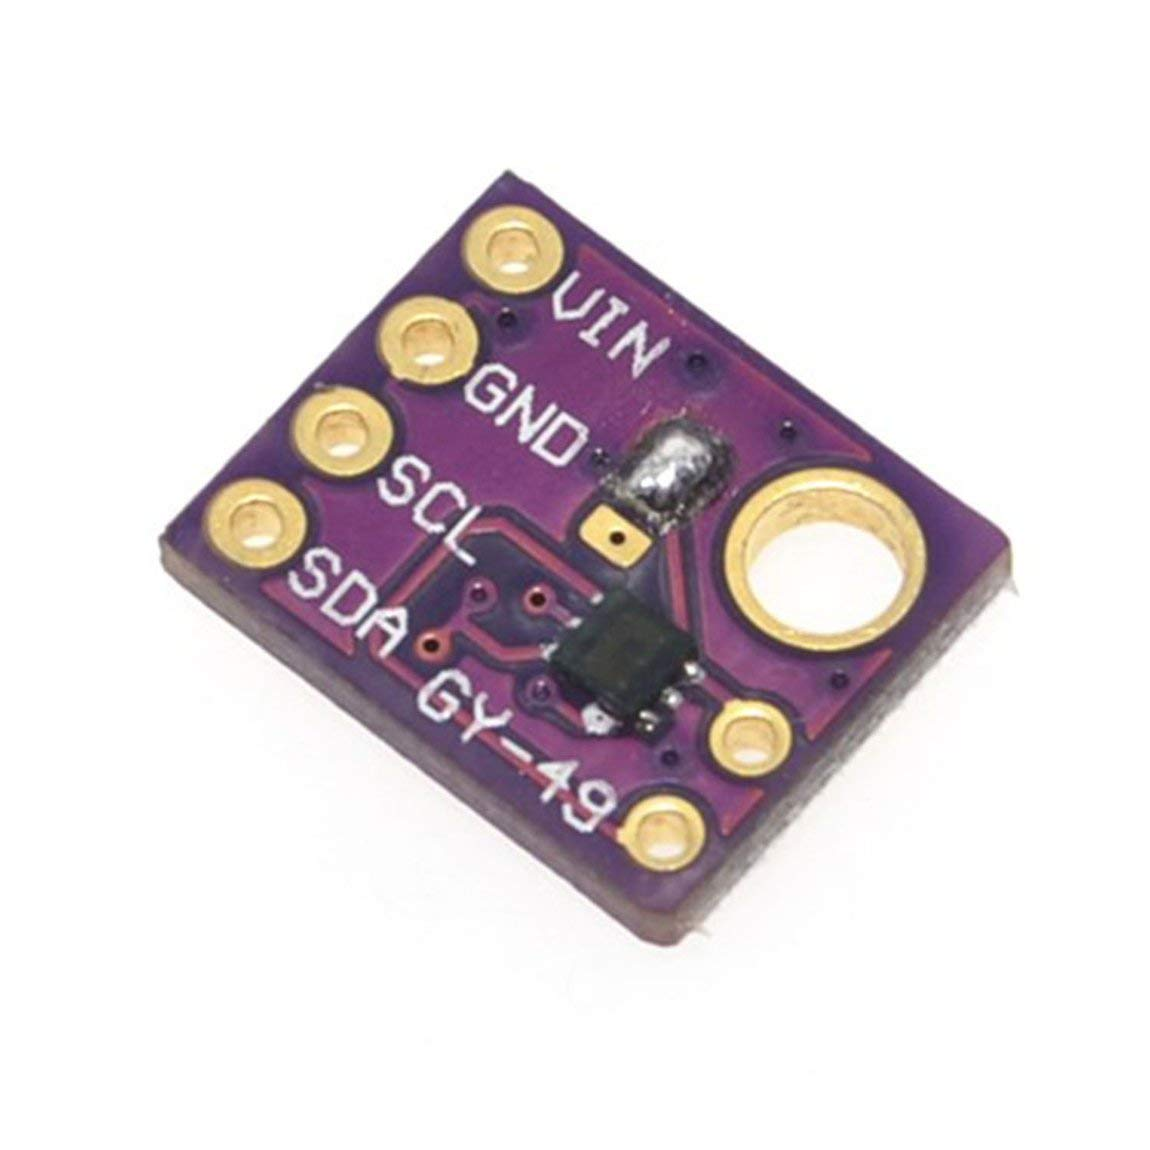 GY-49 Professional High Precision MAX44009 Ambient Light Sensor Module for Arduino with 4P Pin Header MF Purple